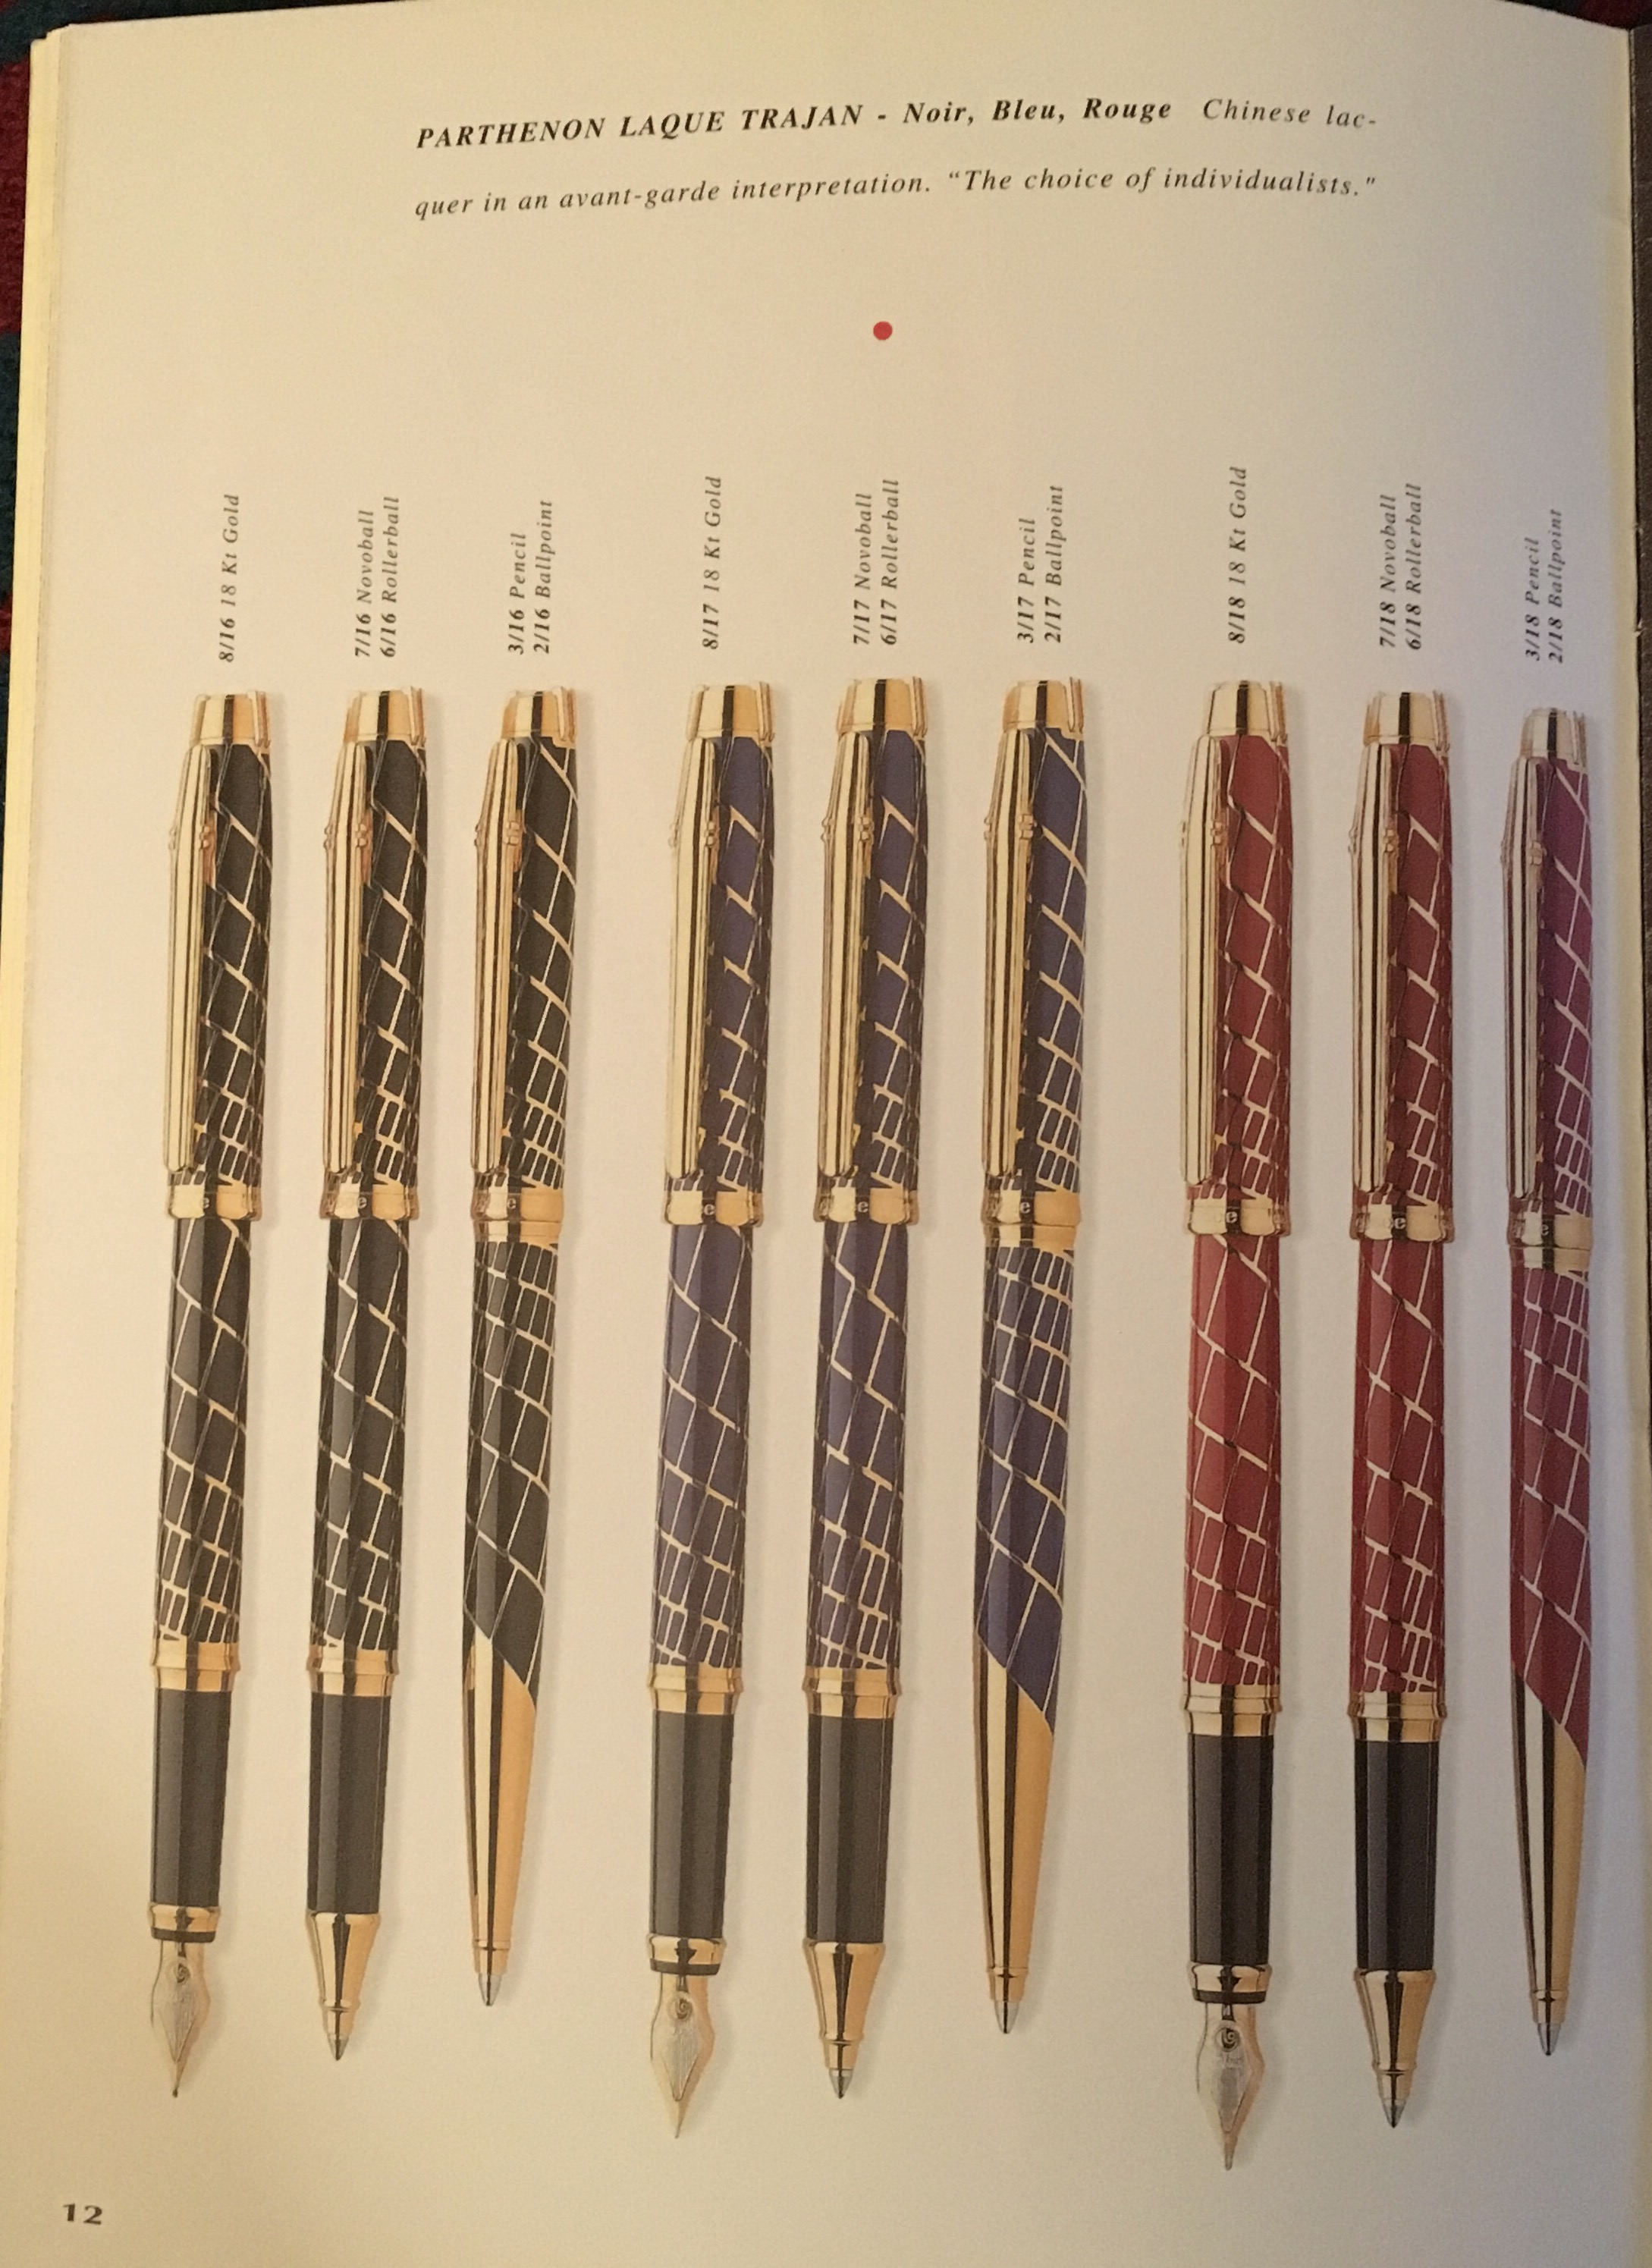 Anyone Heard Of Elysee Fountain Pens Page 5 Other Brands Rollarball Pen Diagram A Fpn 1499559392 Imagejpeg